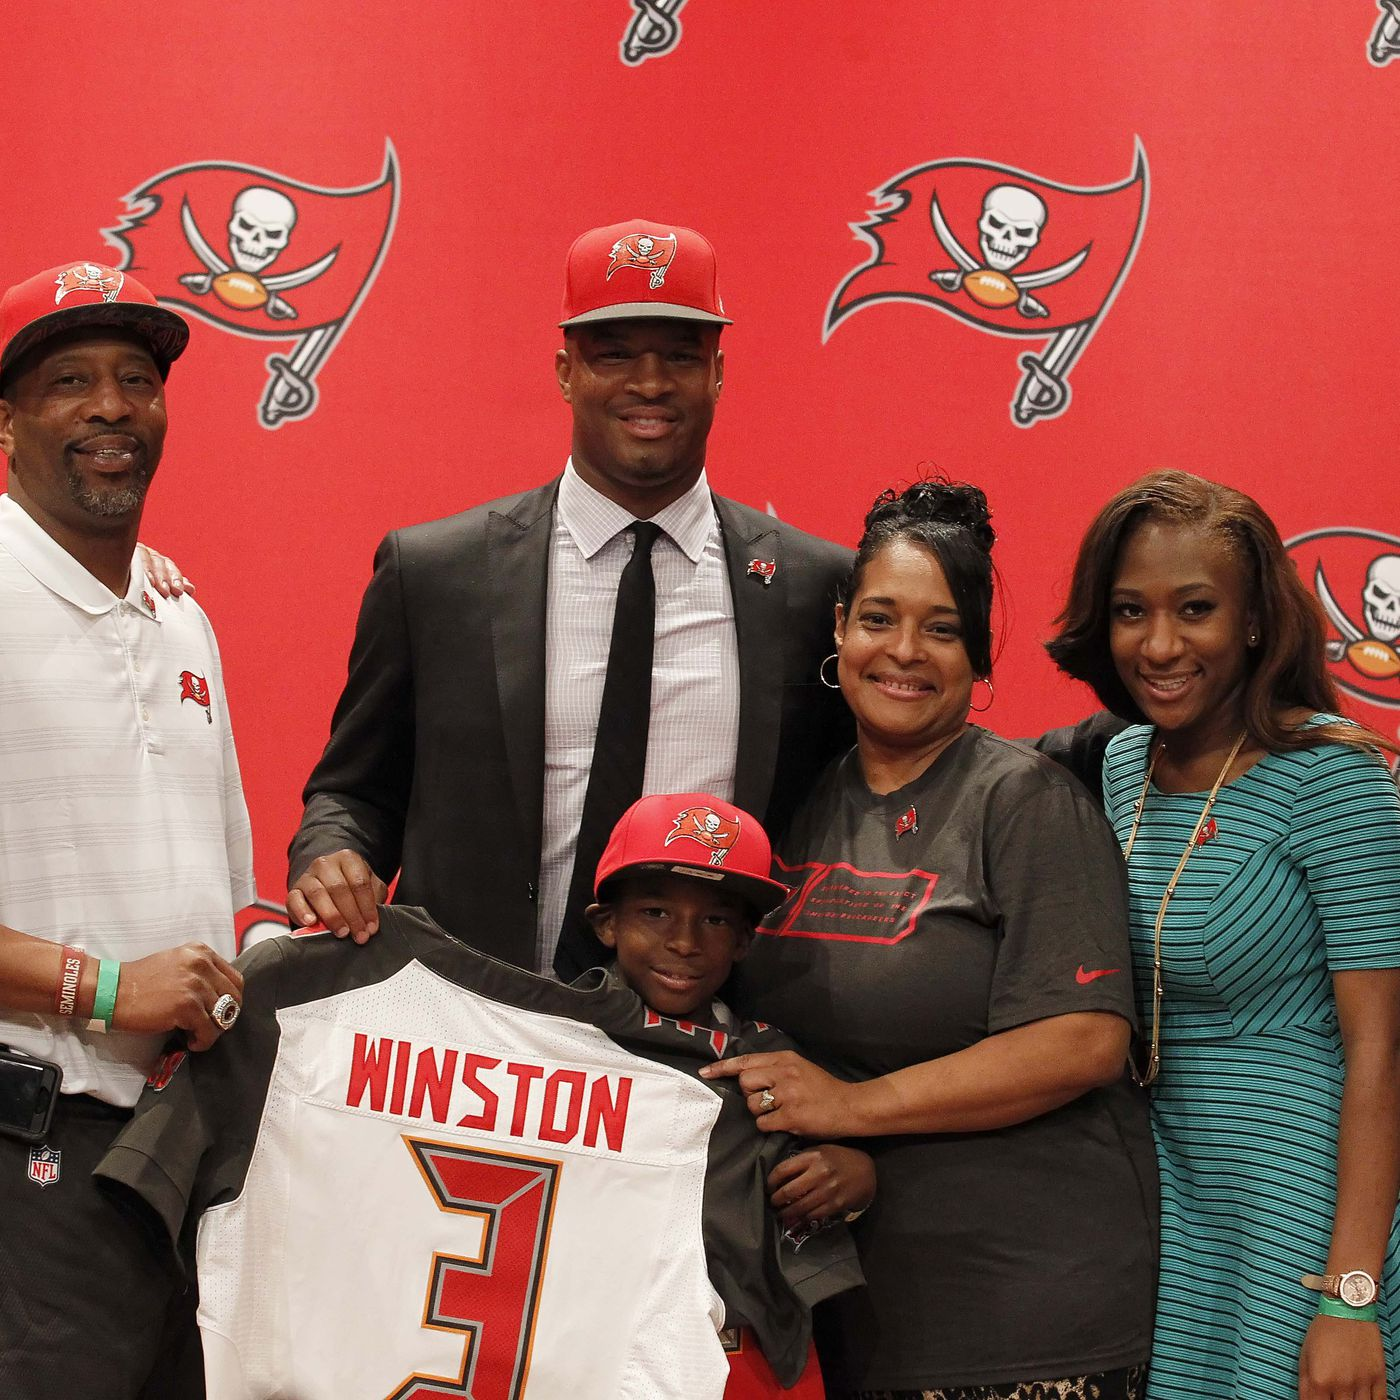 Buccaneers draft picks 2015  Recapping Tampa Bay s draft class ... 02fc786fd18